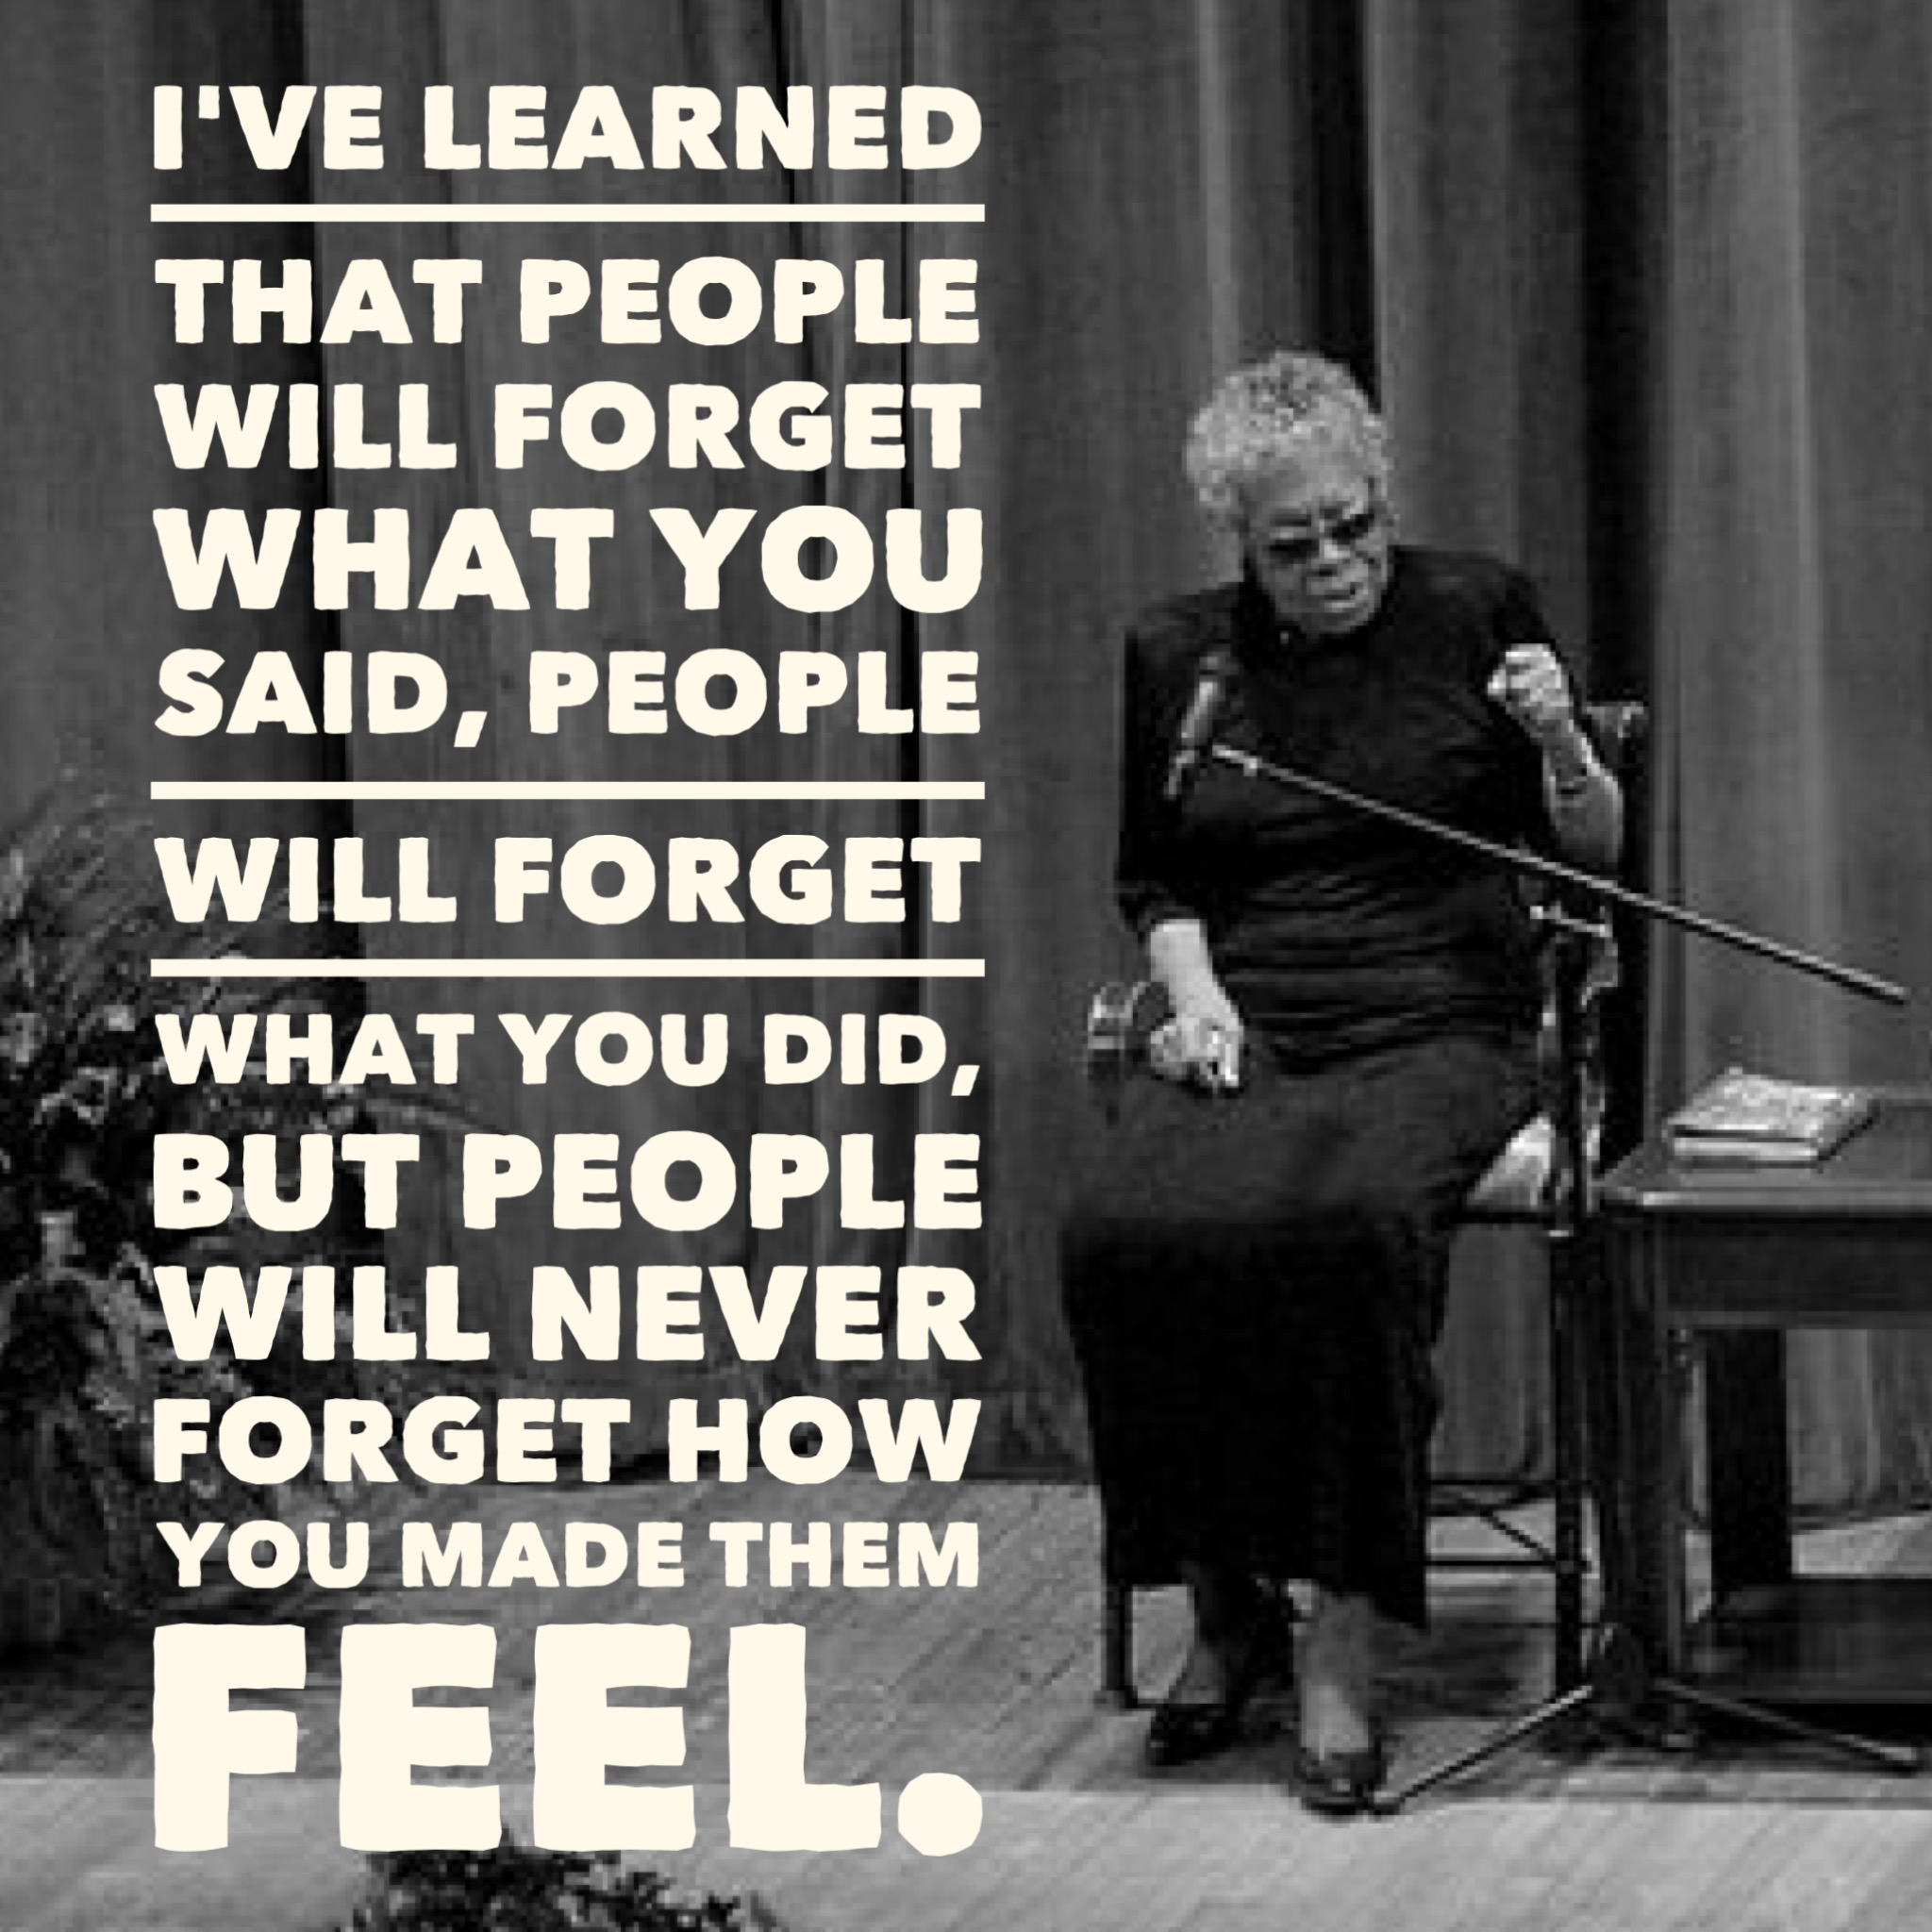 Maya Angelou Quotes: 10 Profound Sayings And Poems